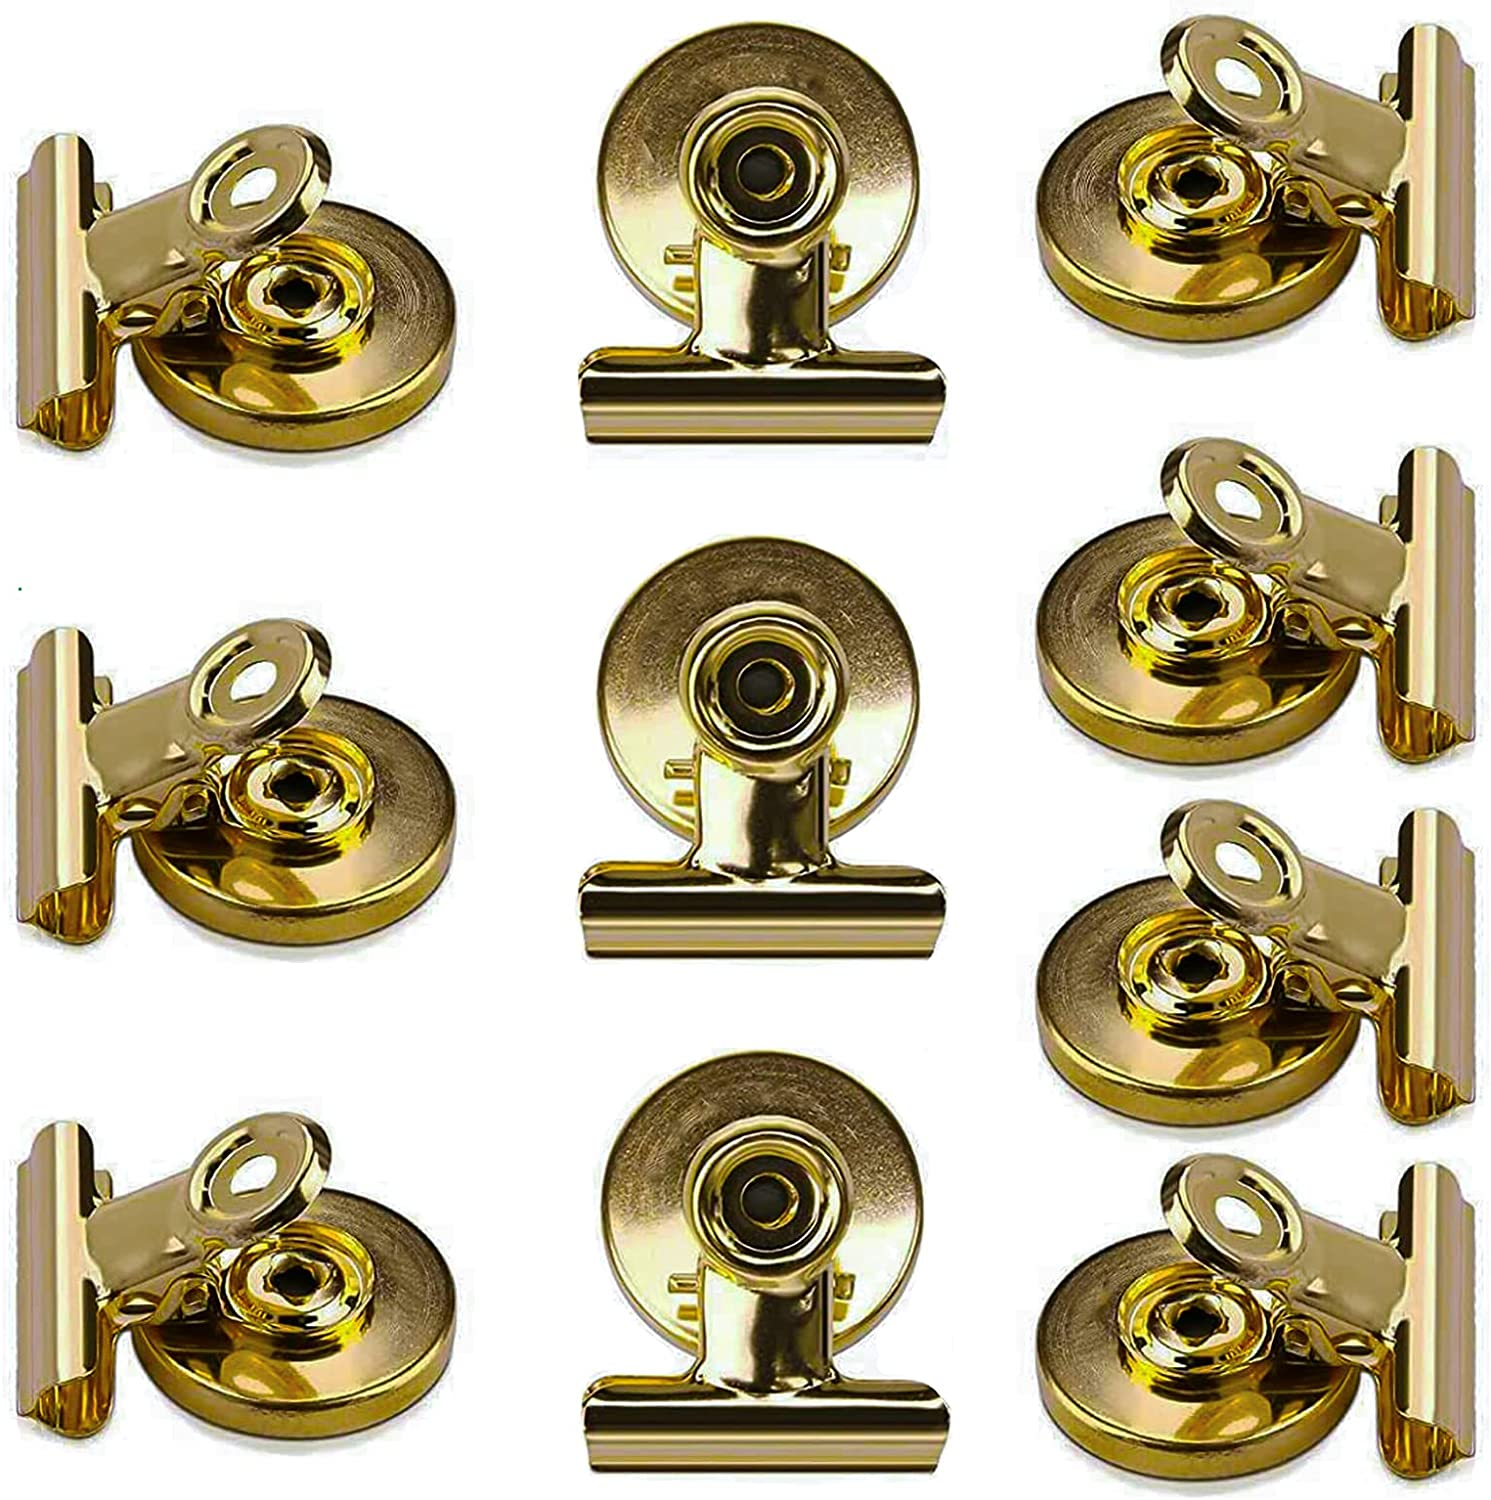 10 Pack Magnetic Clips, Heavy Duty Refrigerator Magnet Clips, Refrigerator Magnetic Metal Clips for Office, Classroom and Whiteboard to Display Photos Lists, Calendars and Crafts (1.5Inch Wide, Gold)